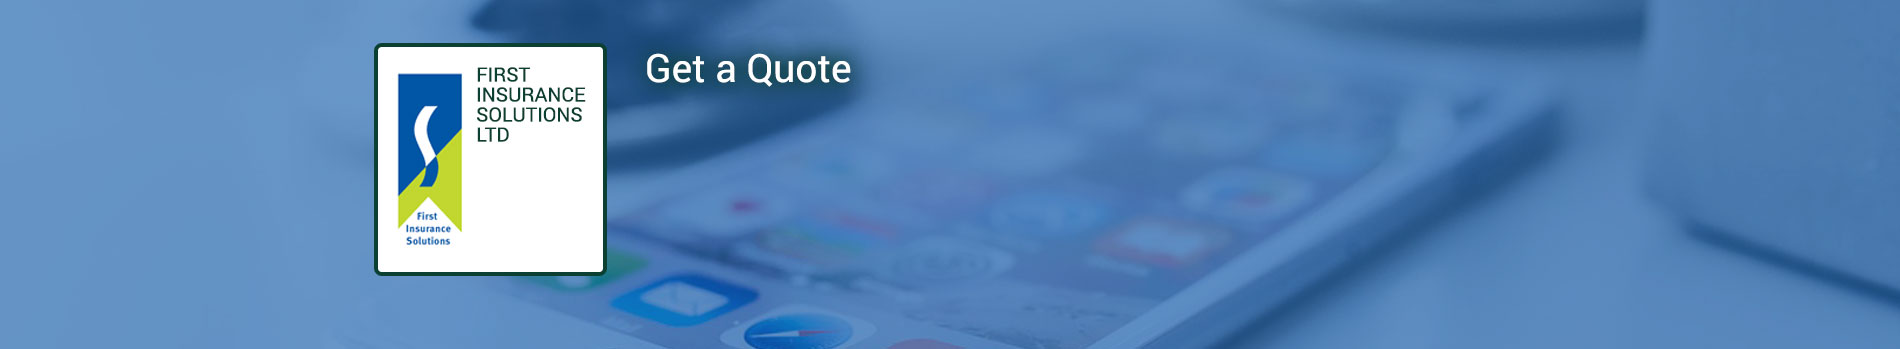 get-a-quote-banner